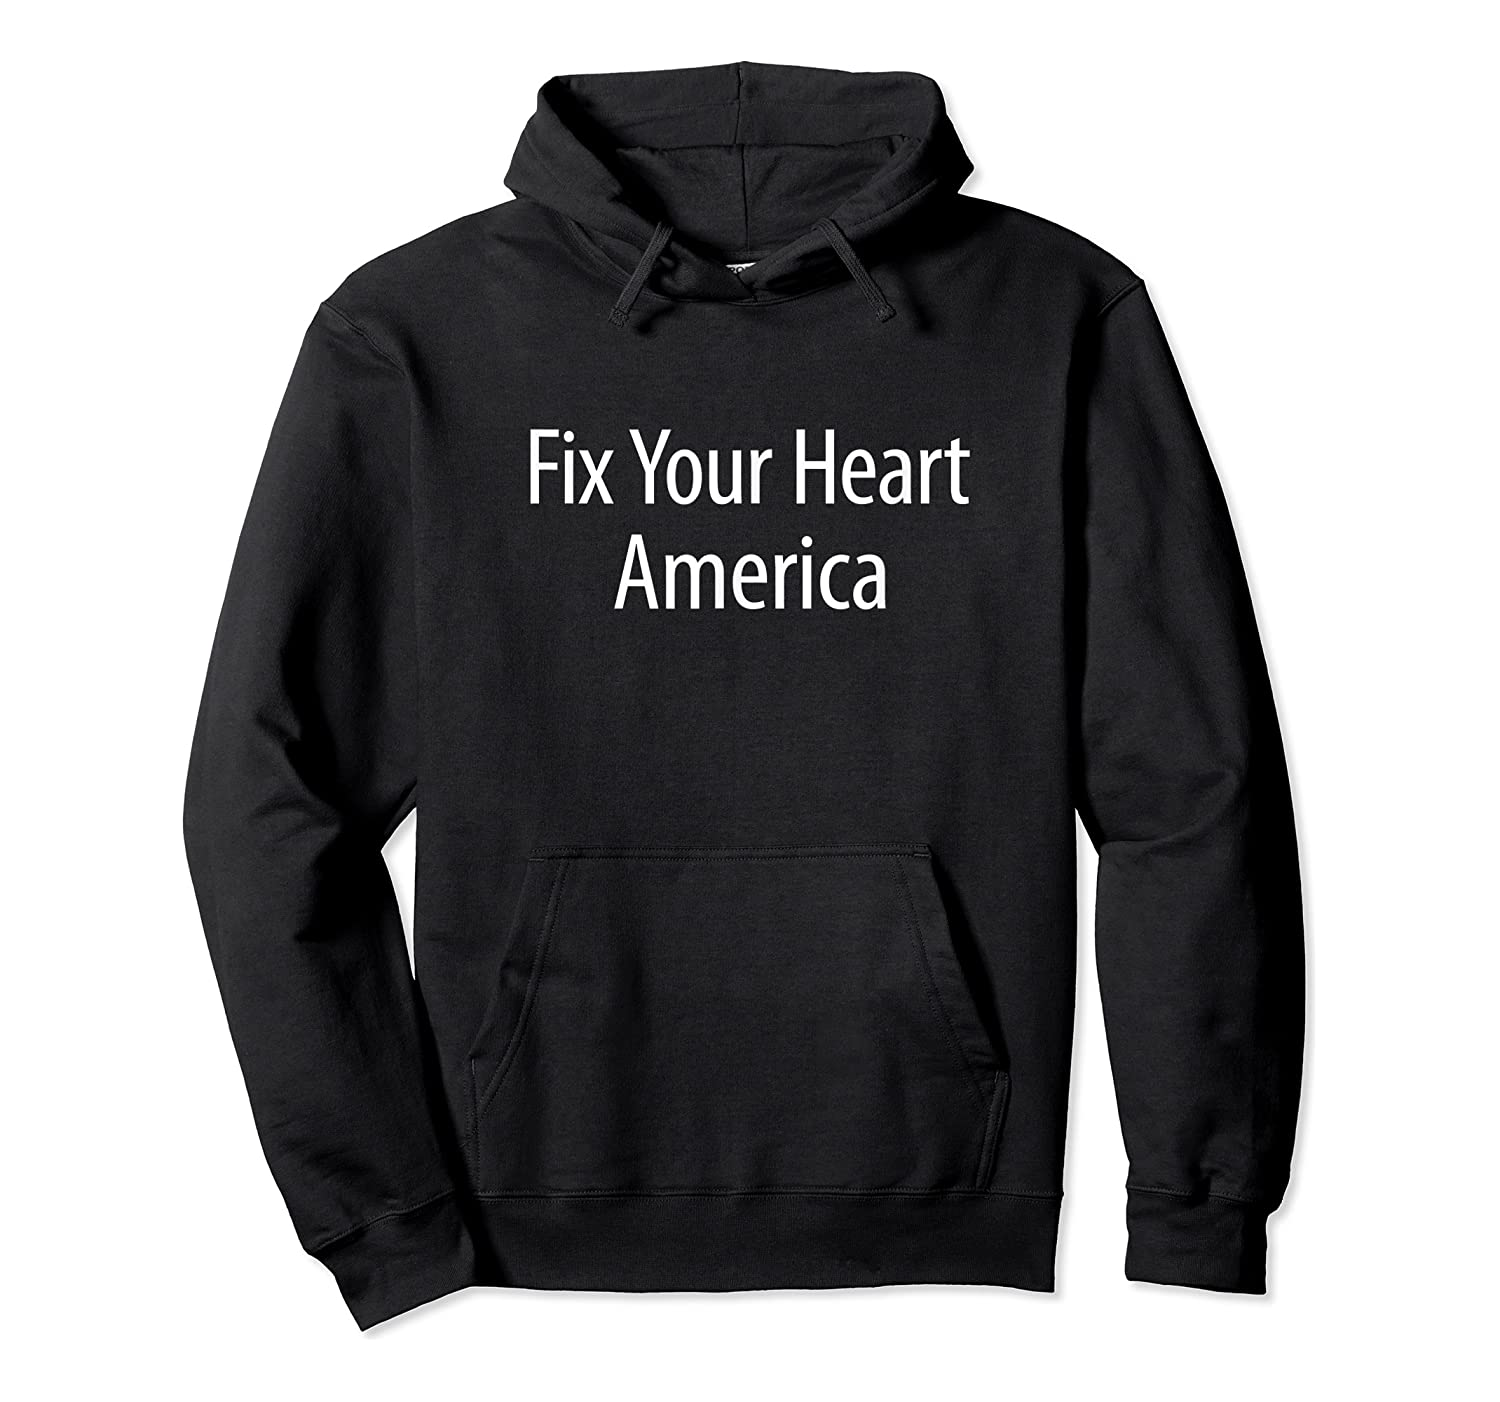 Fix Your Heart America - T-shirt Unisex Pullover Hoodie